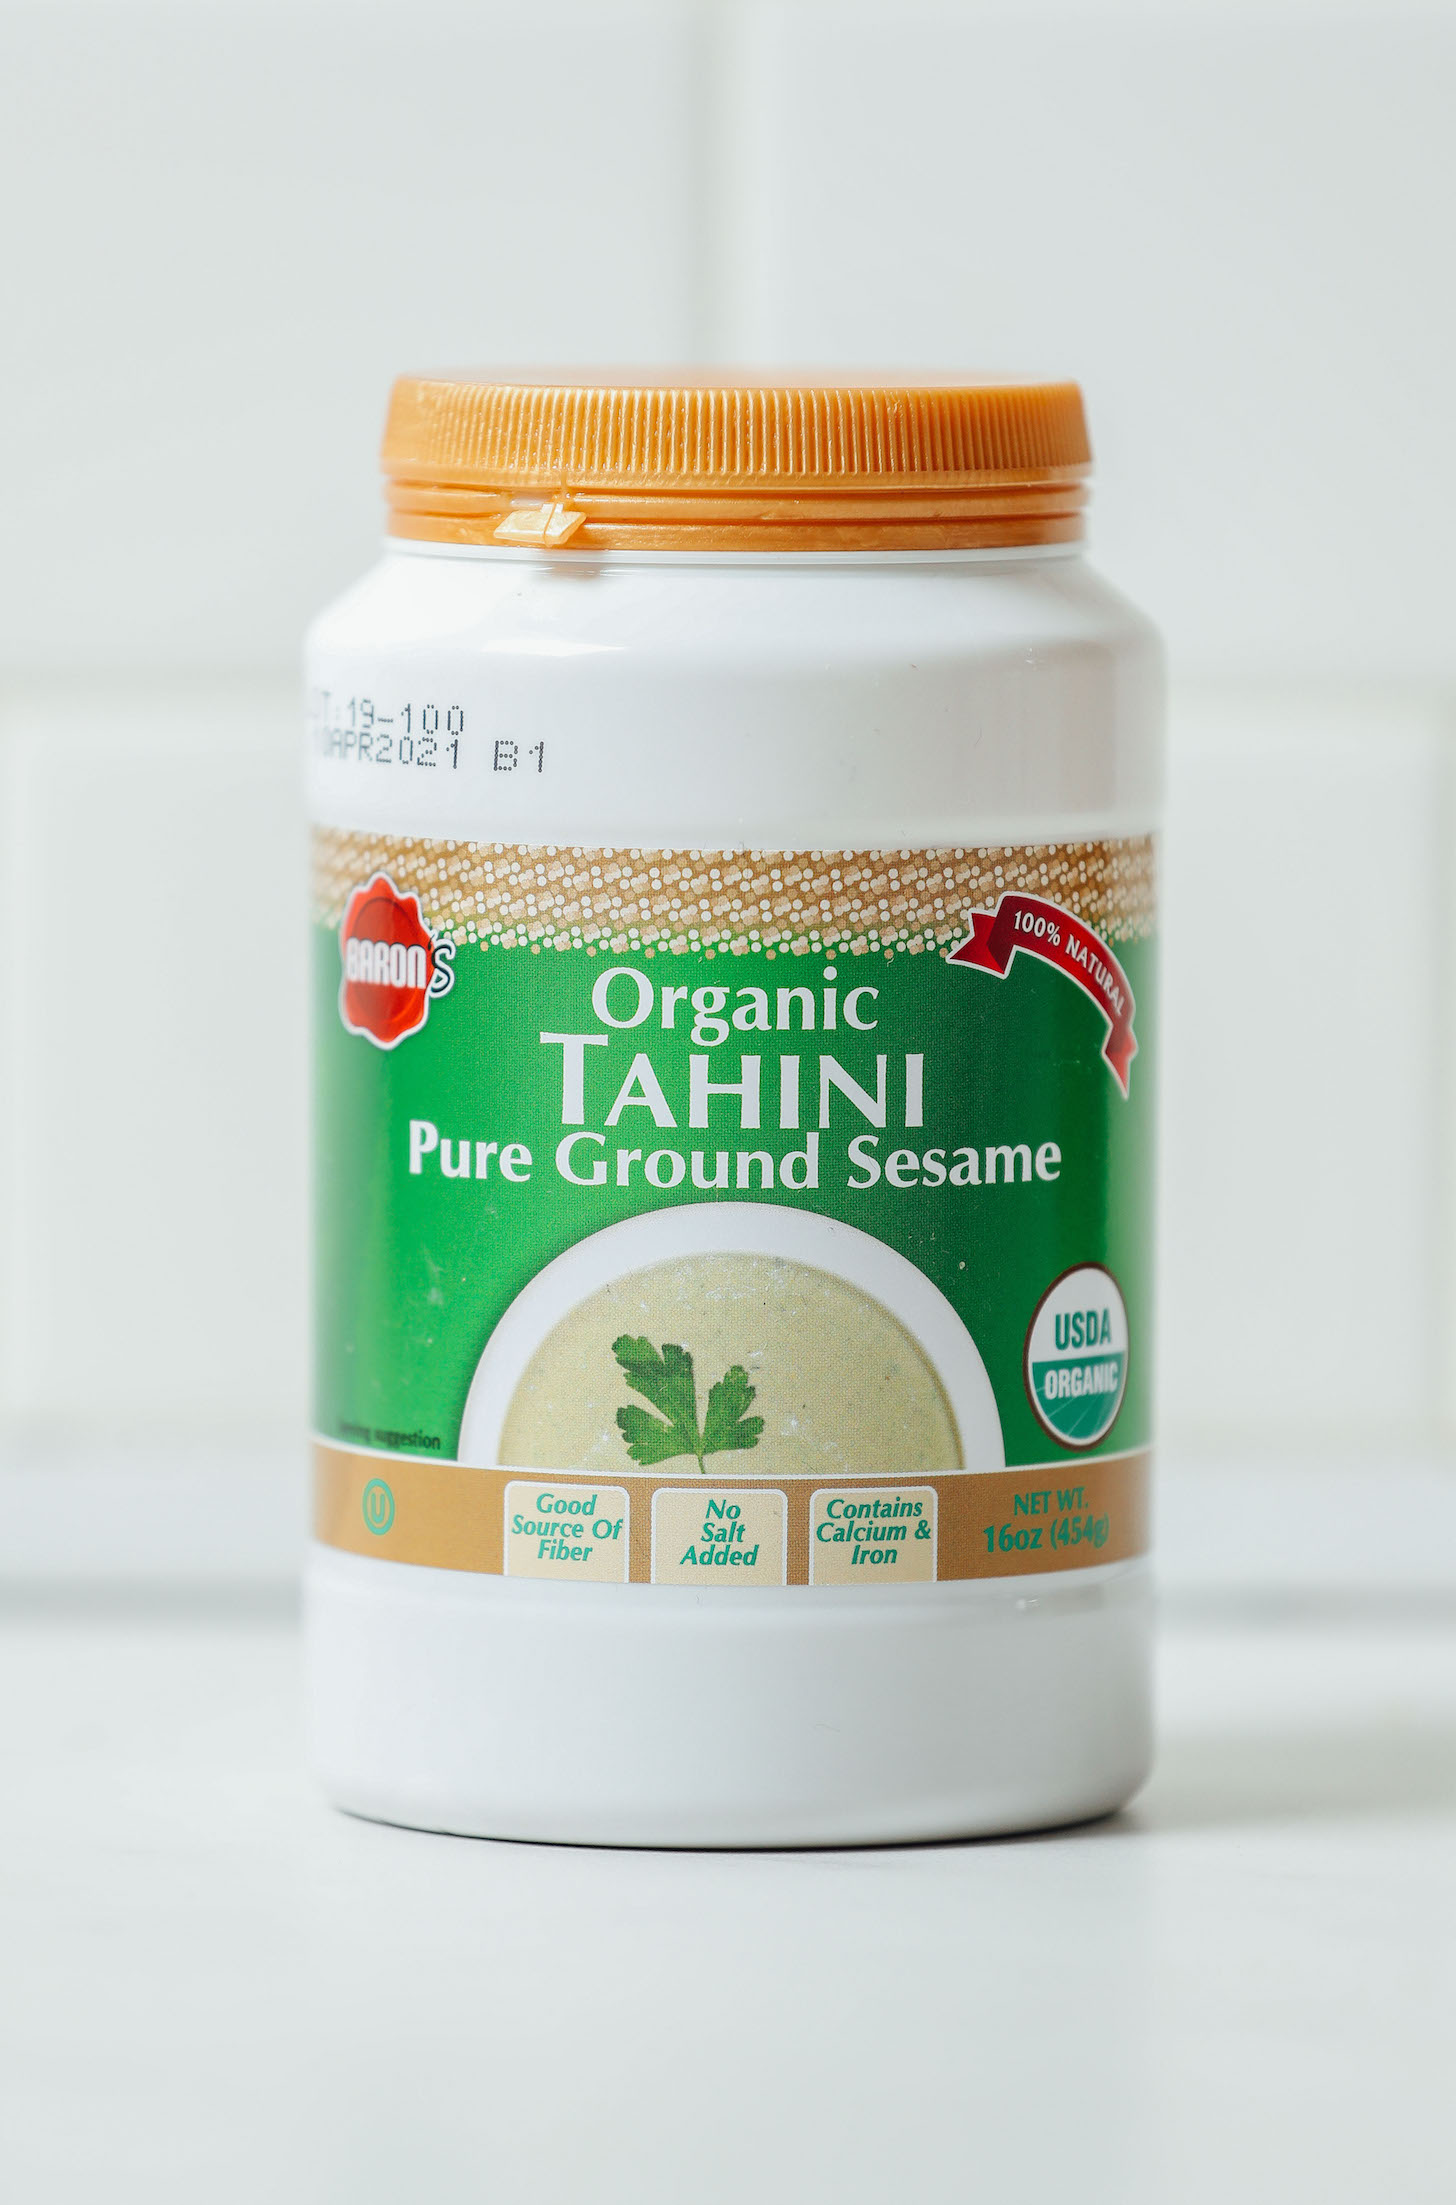 Baron tahini for the first place winner in our Tahini Butters Review